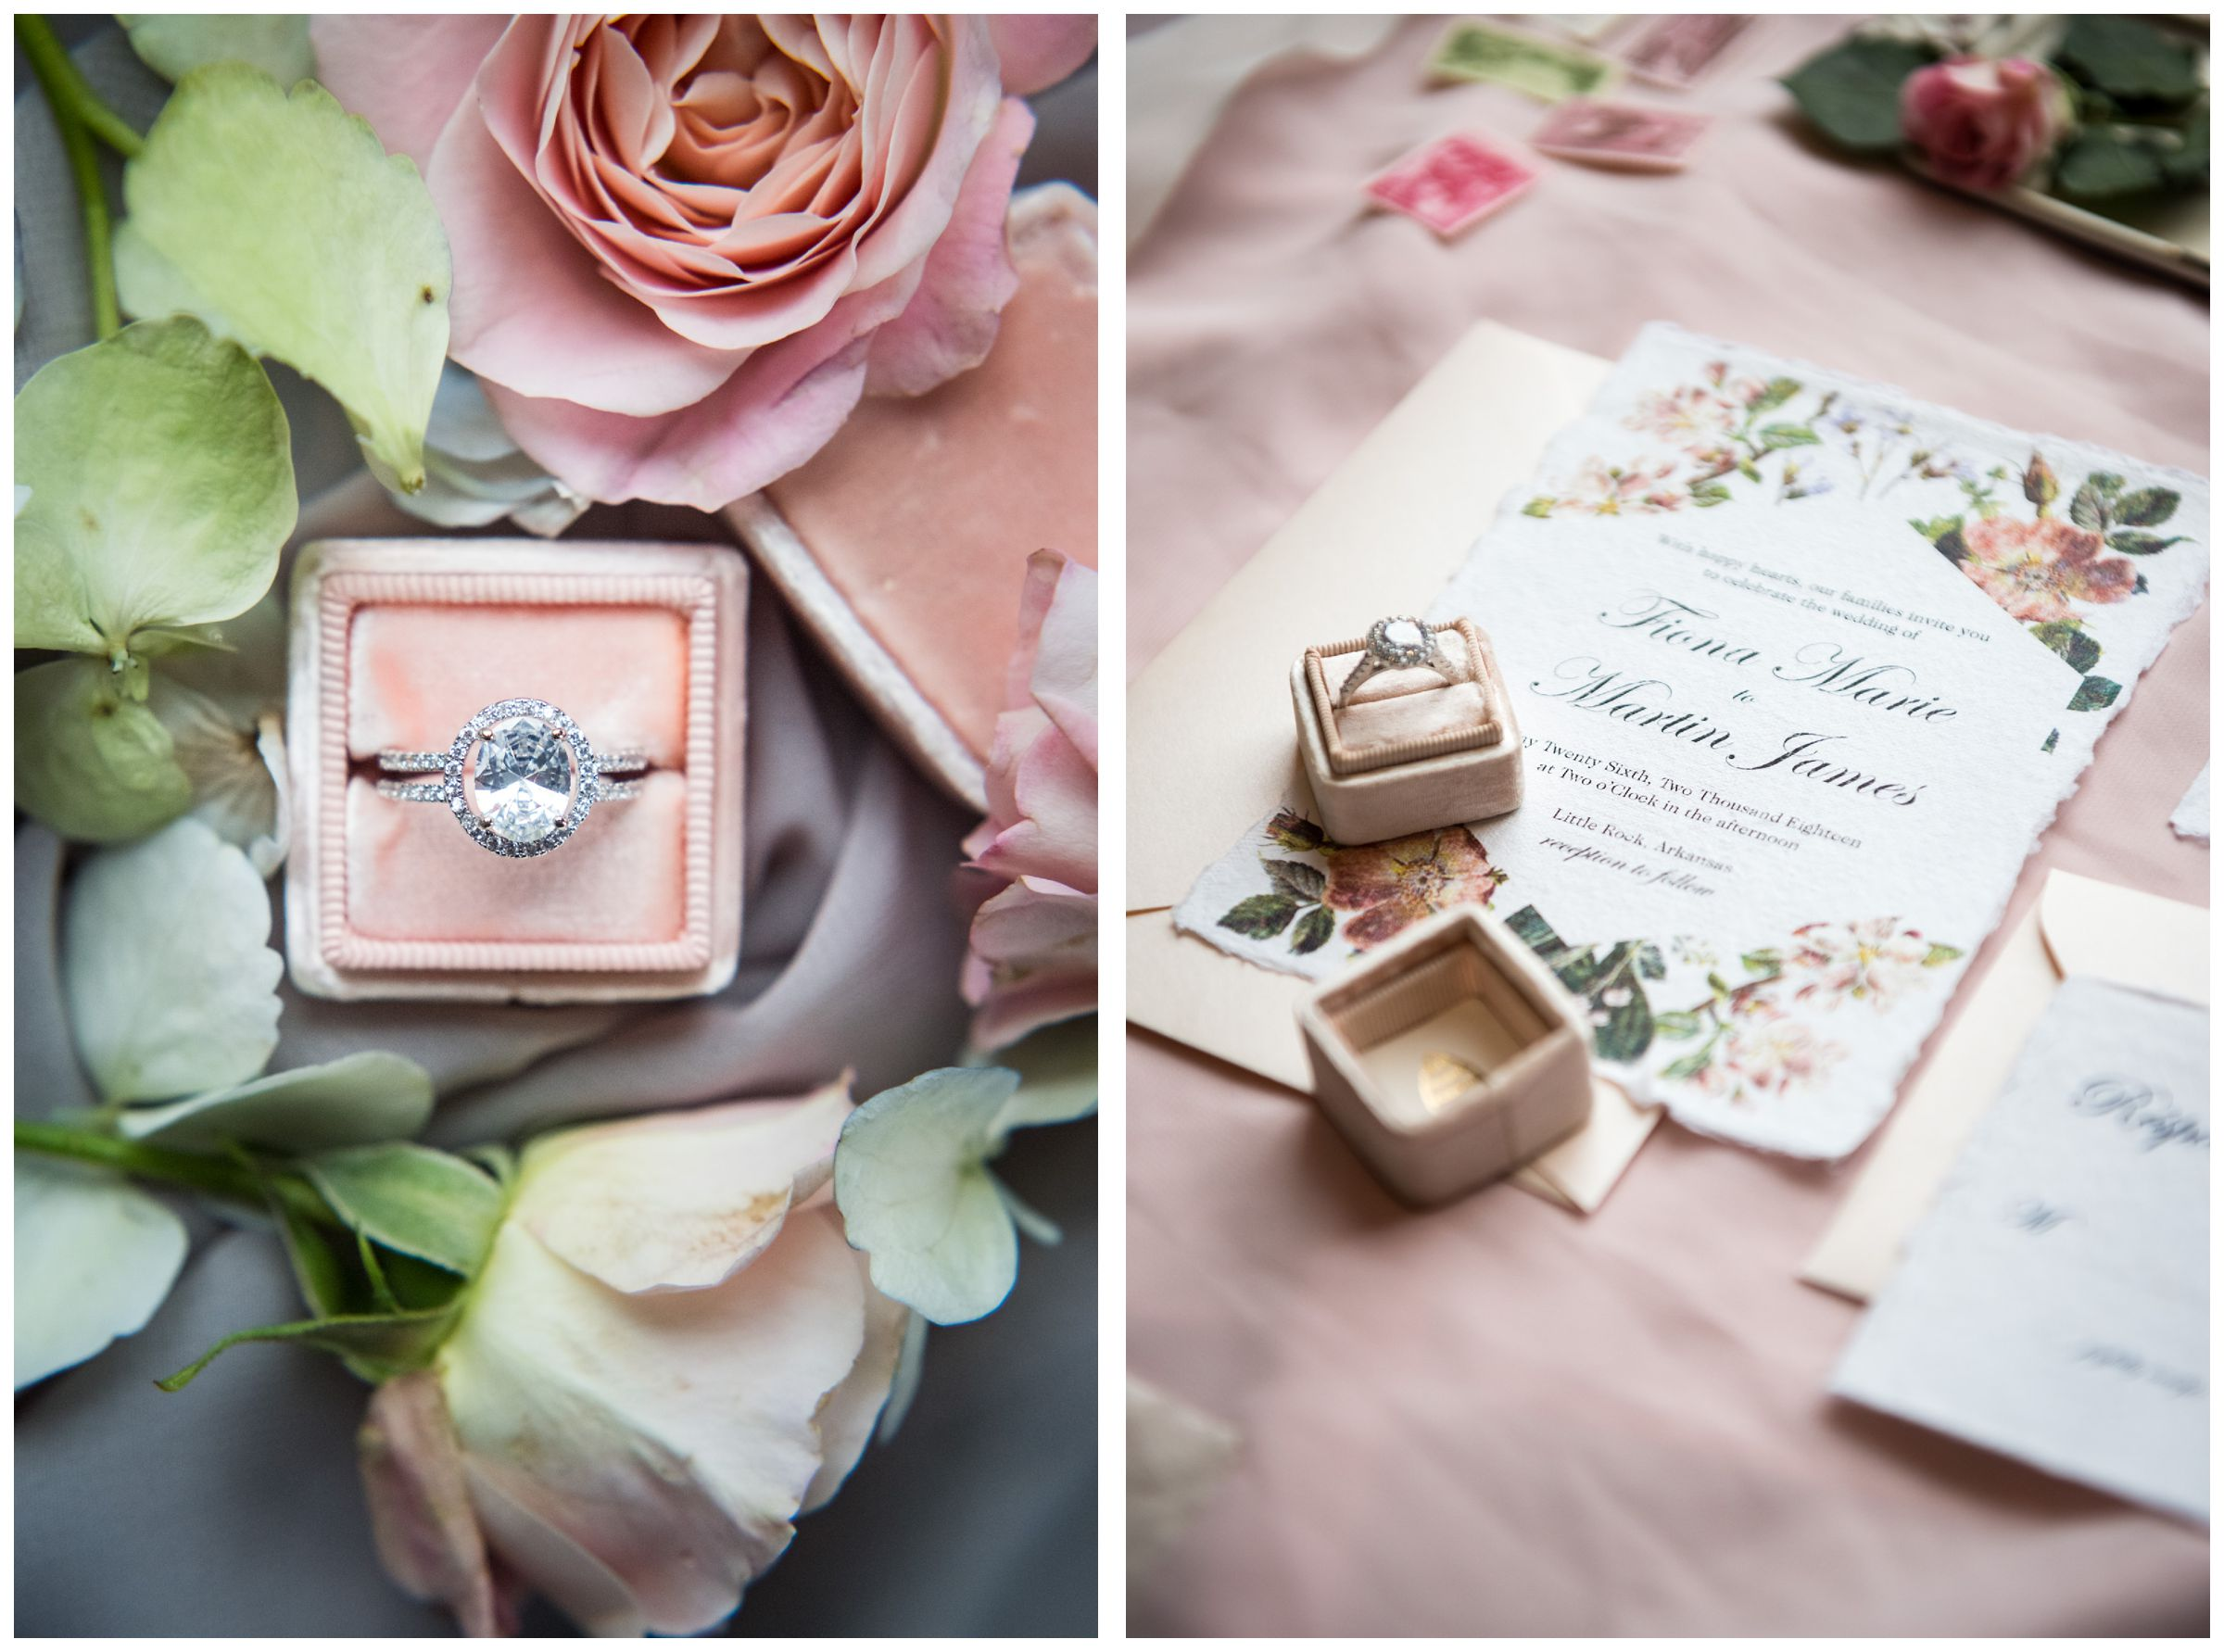 engagement ring in pink box and wedding invitation stationery suite with pink flowers